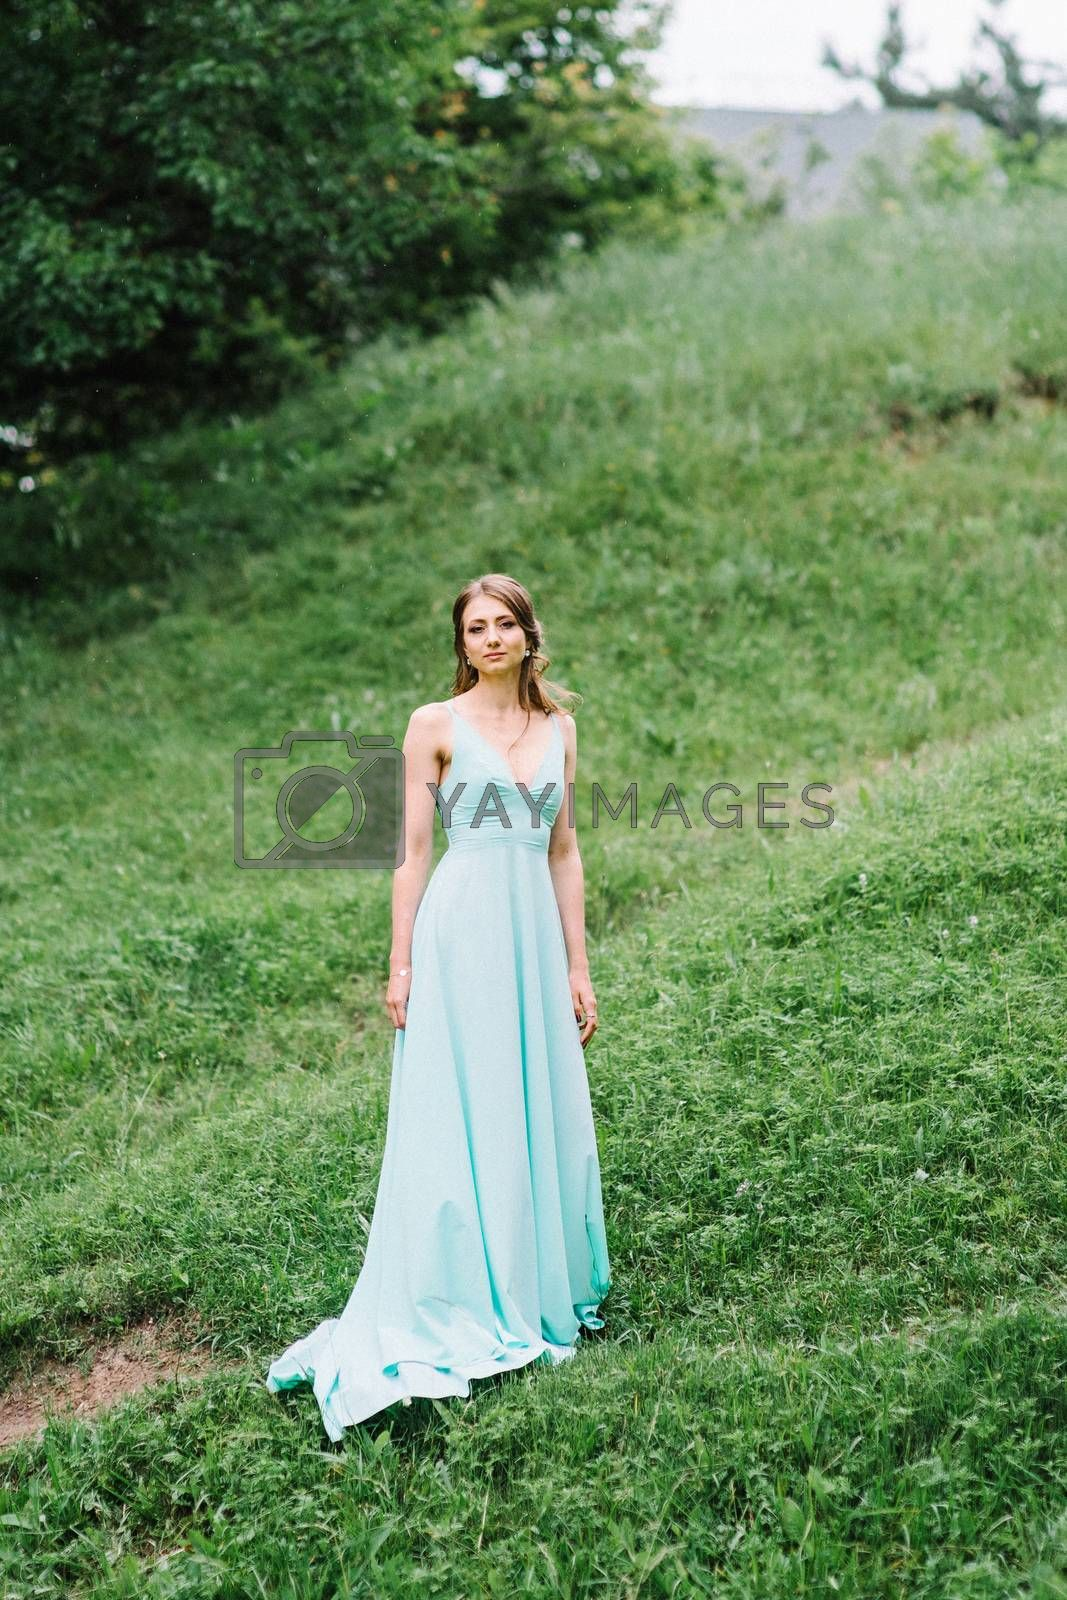 Happy girl in a turquoise long dress in a green park on a background of herbs, trees and rose bushes